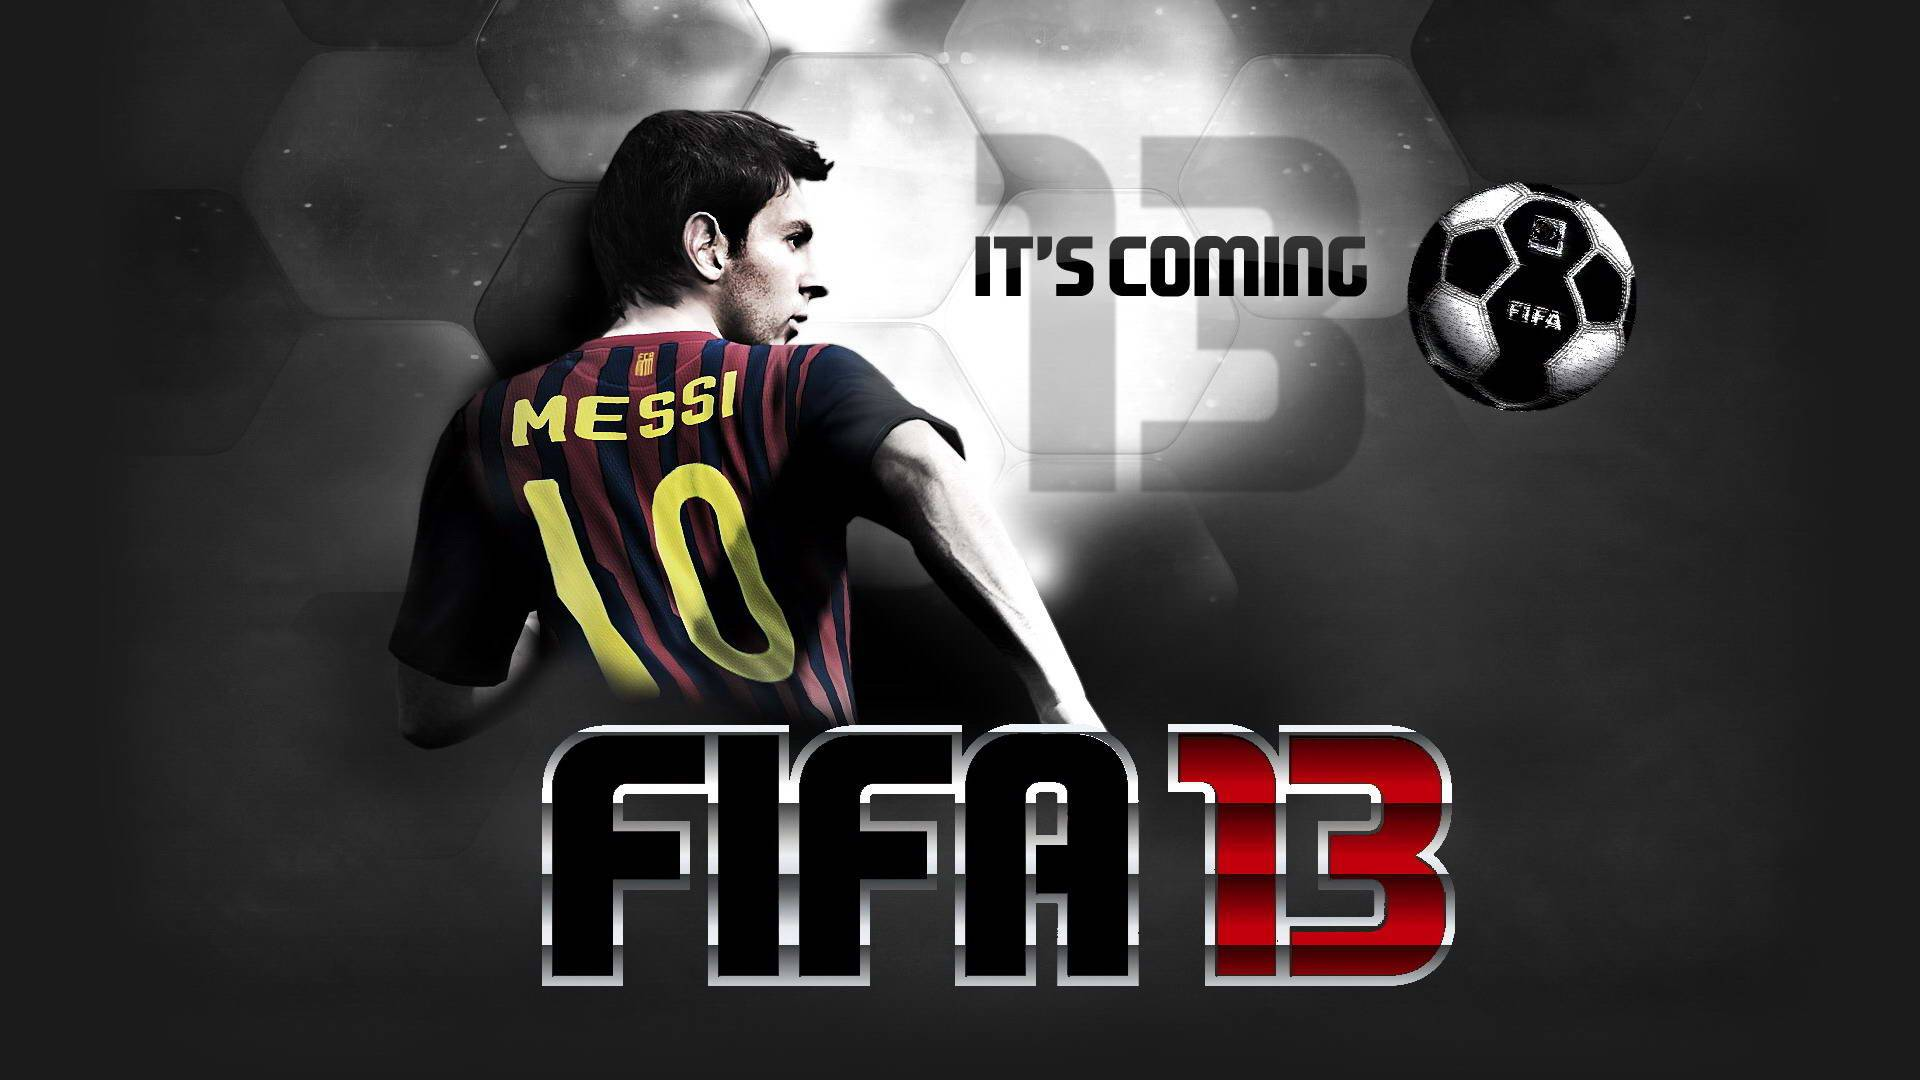 FIFA 13 Wallpapers in HD GamingBoltcom Video Game News Reviews 1920x1080